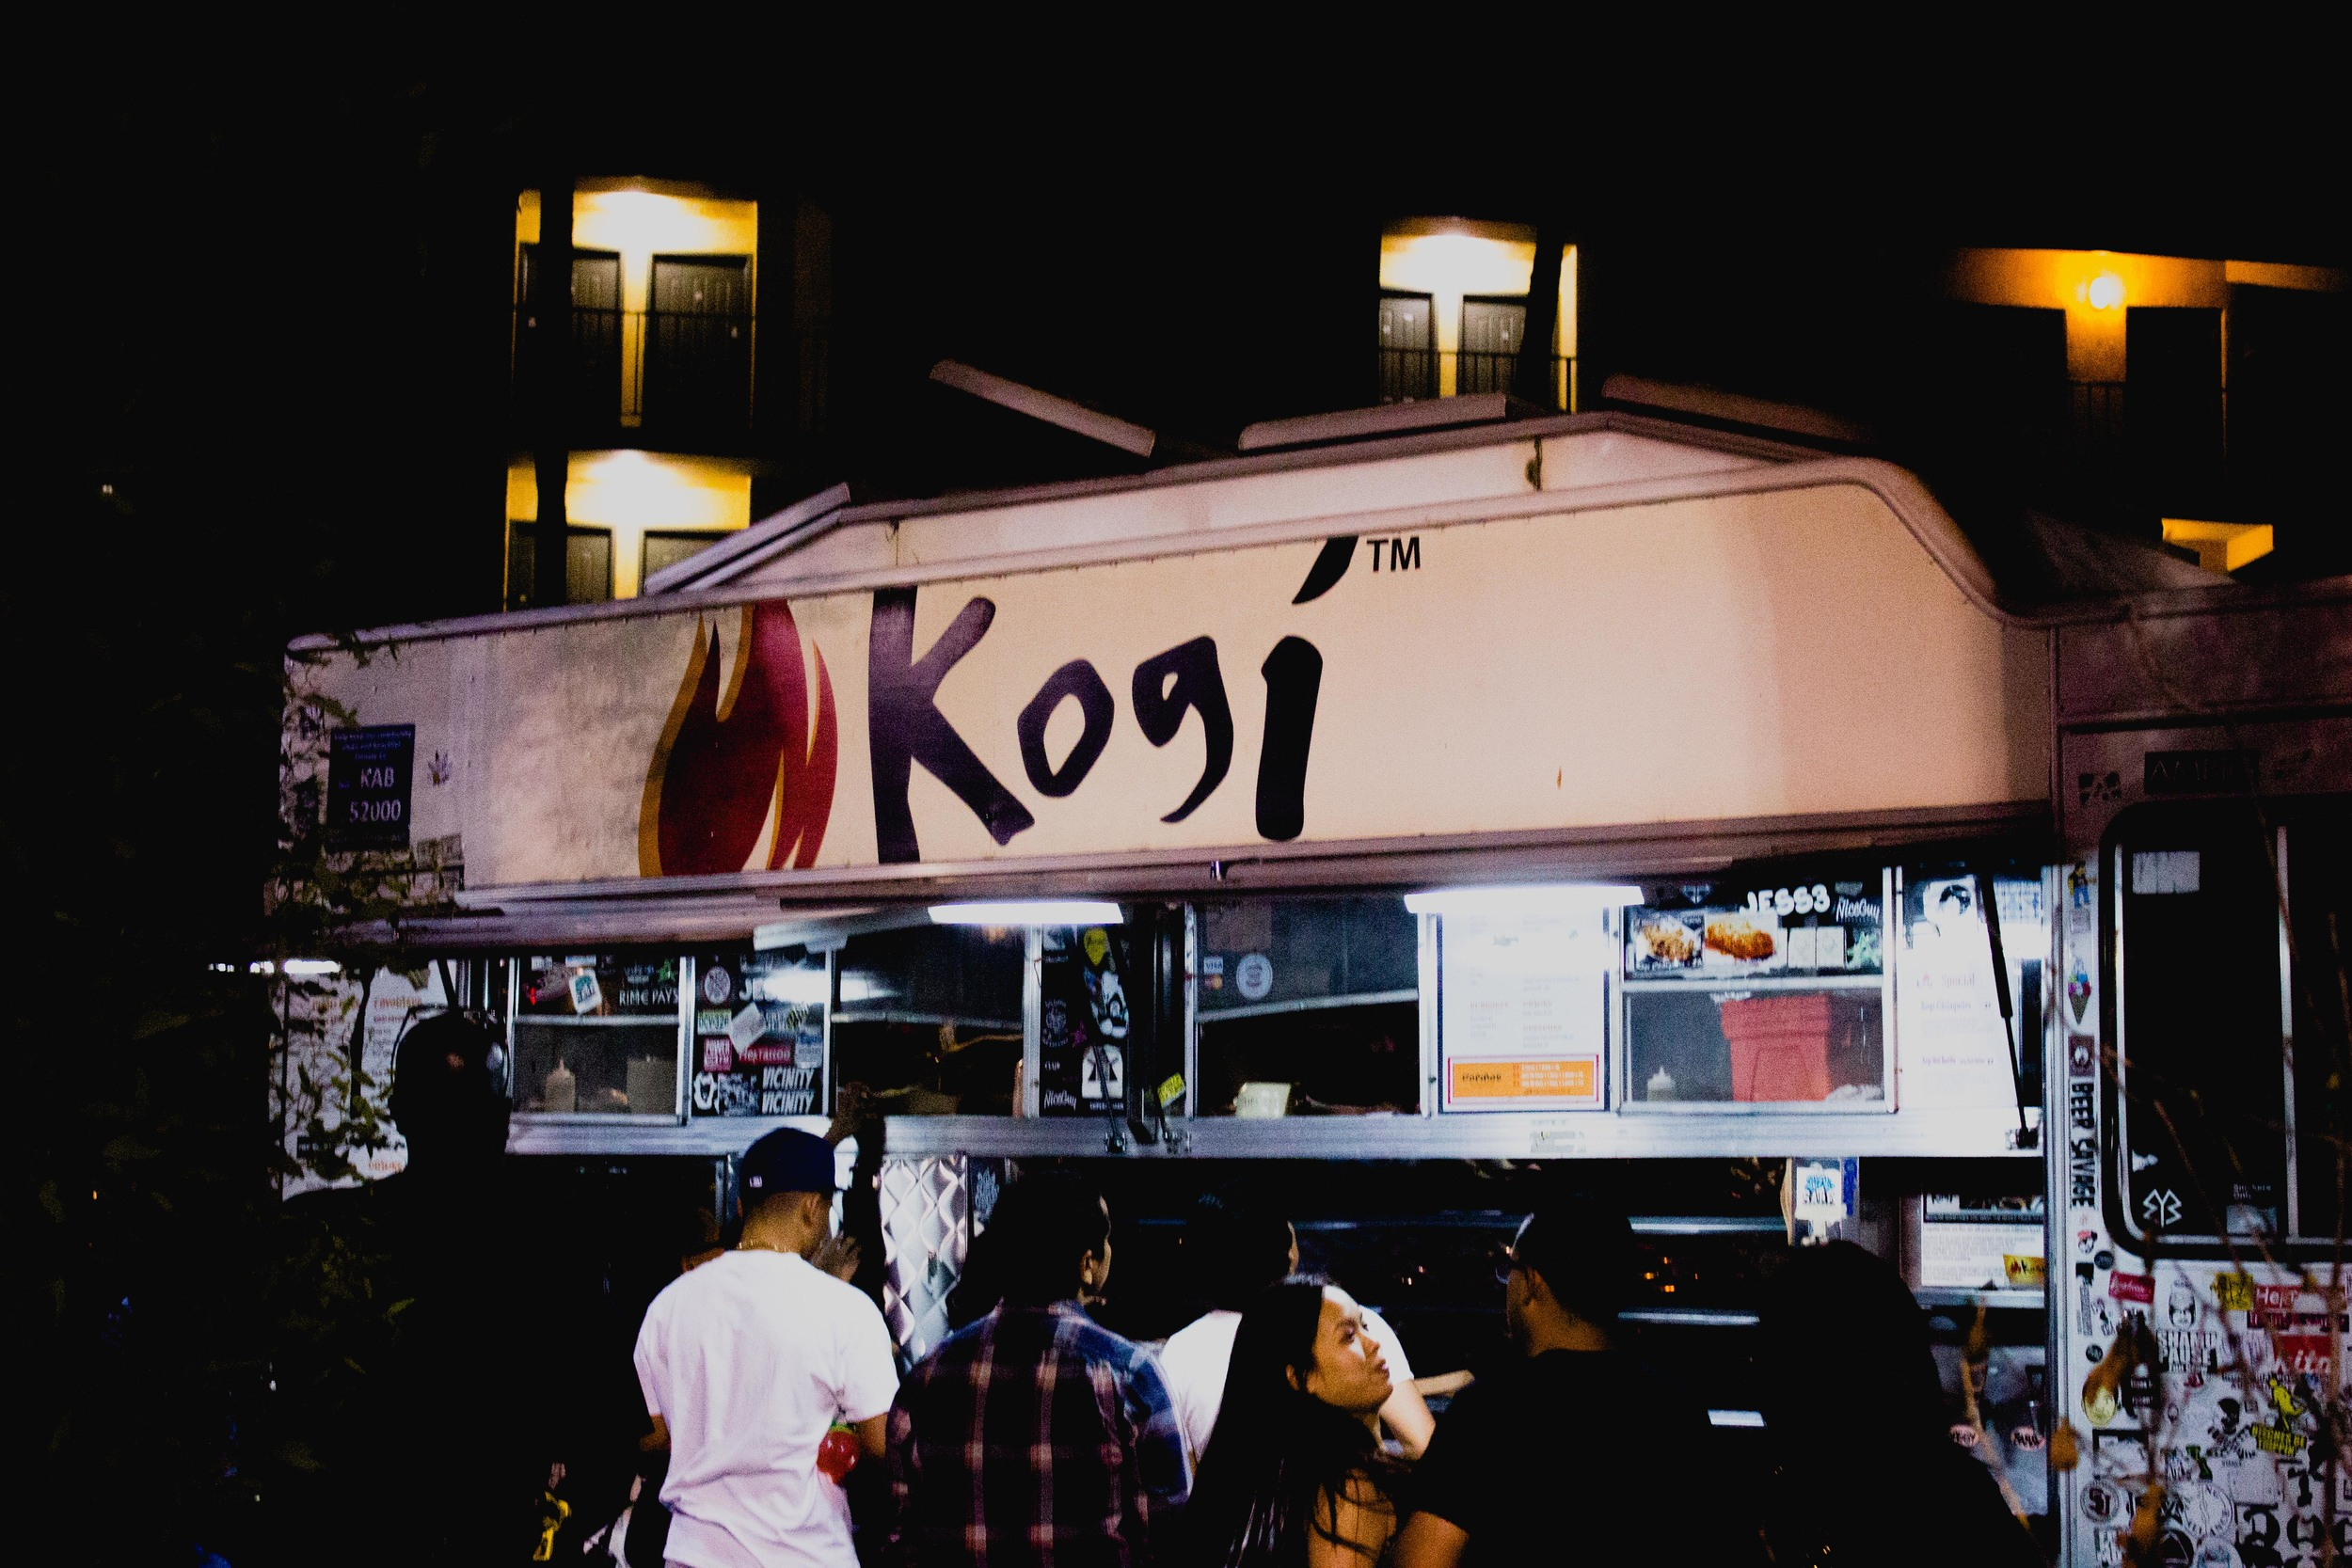 Chef Roy Choi's Kogi BBQ food truck, which kickstarted L.A.'s food truck